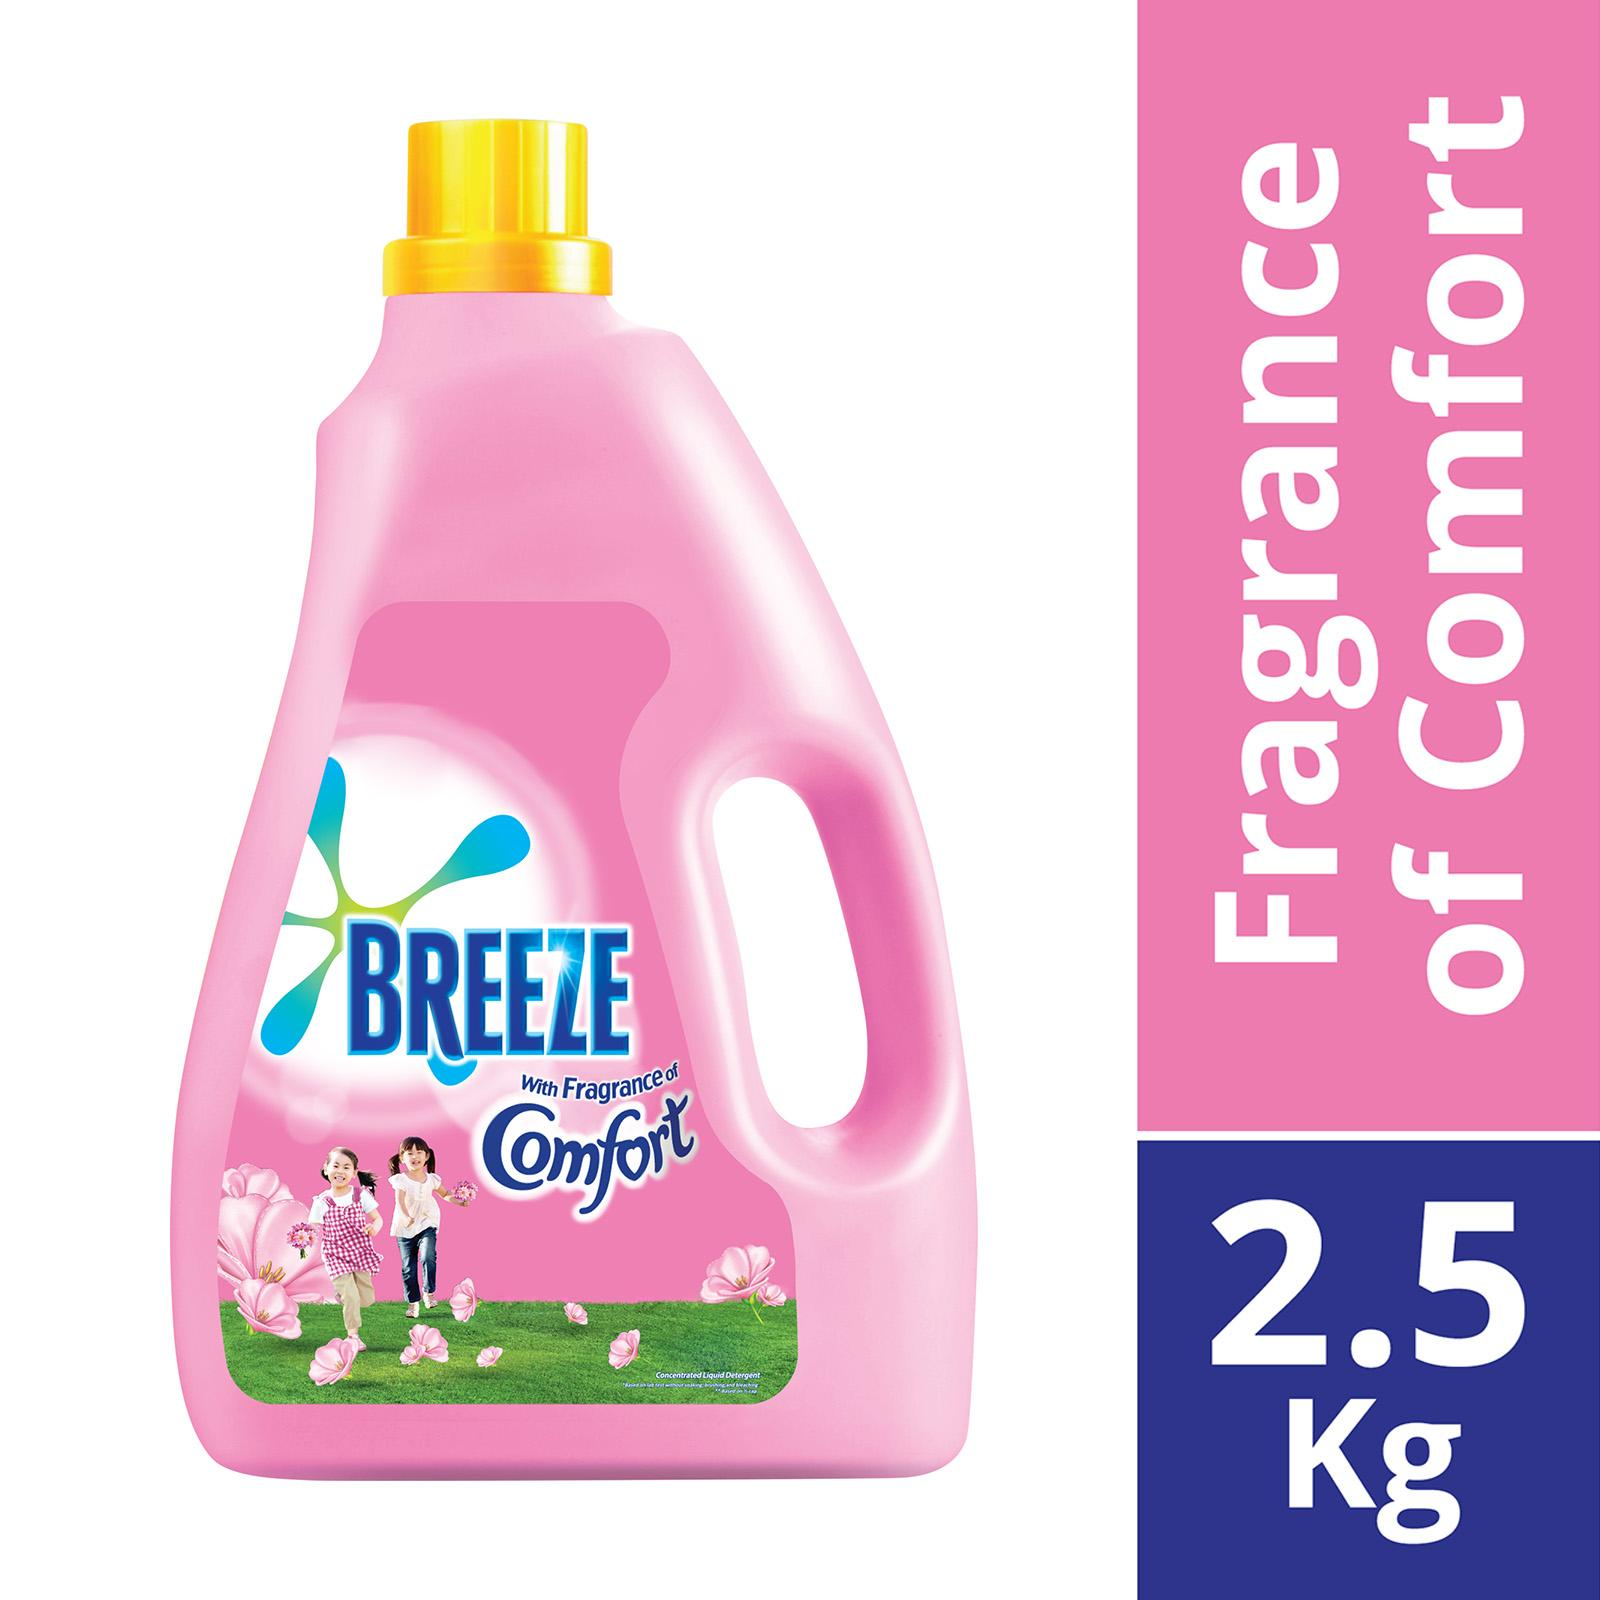 BREEZE Liquid Detergent Fragrance of Comfort 2.5kg